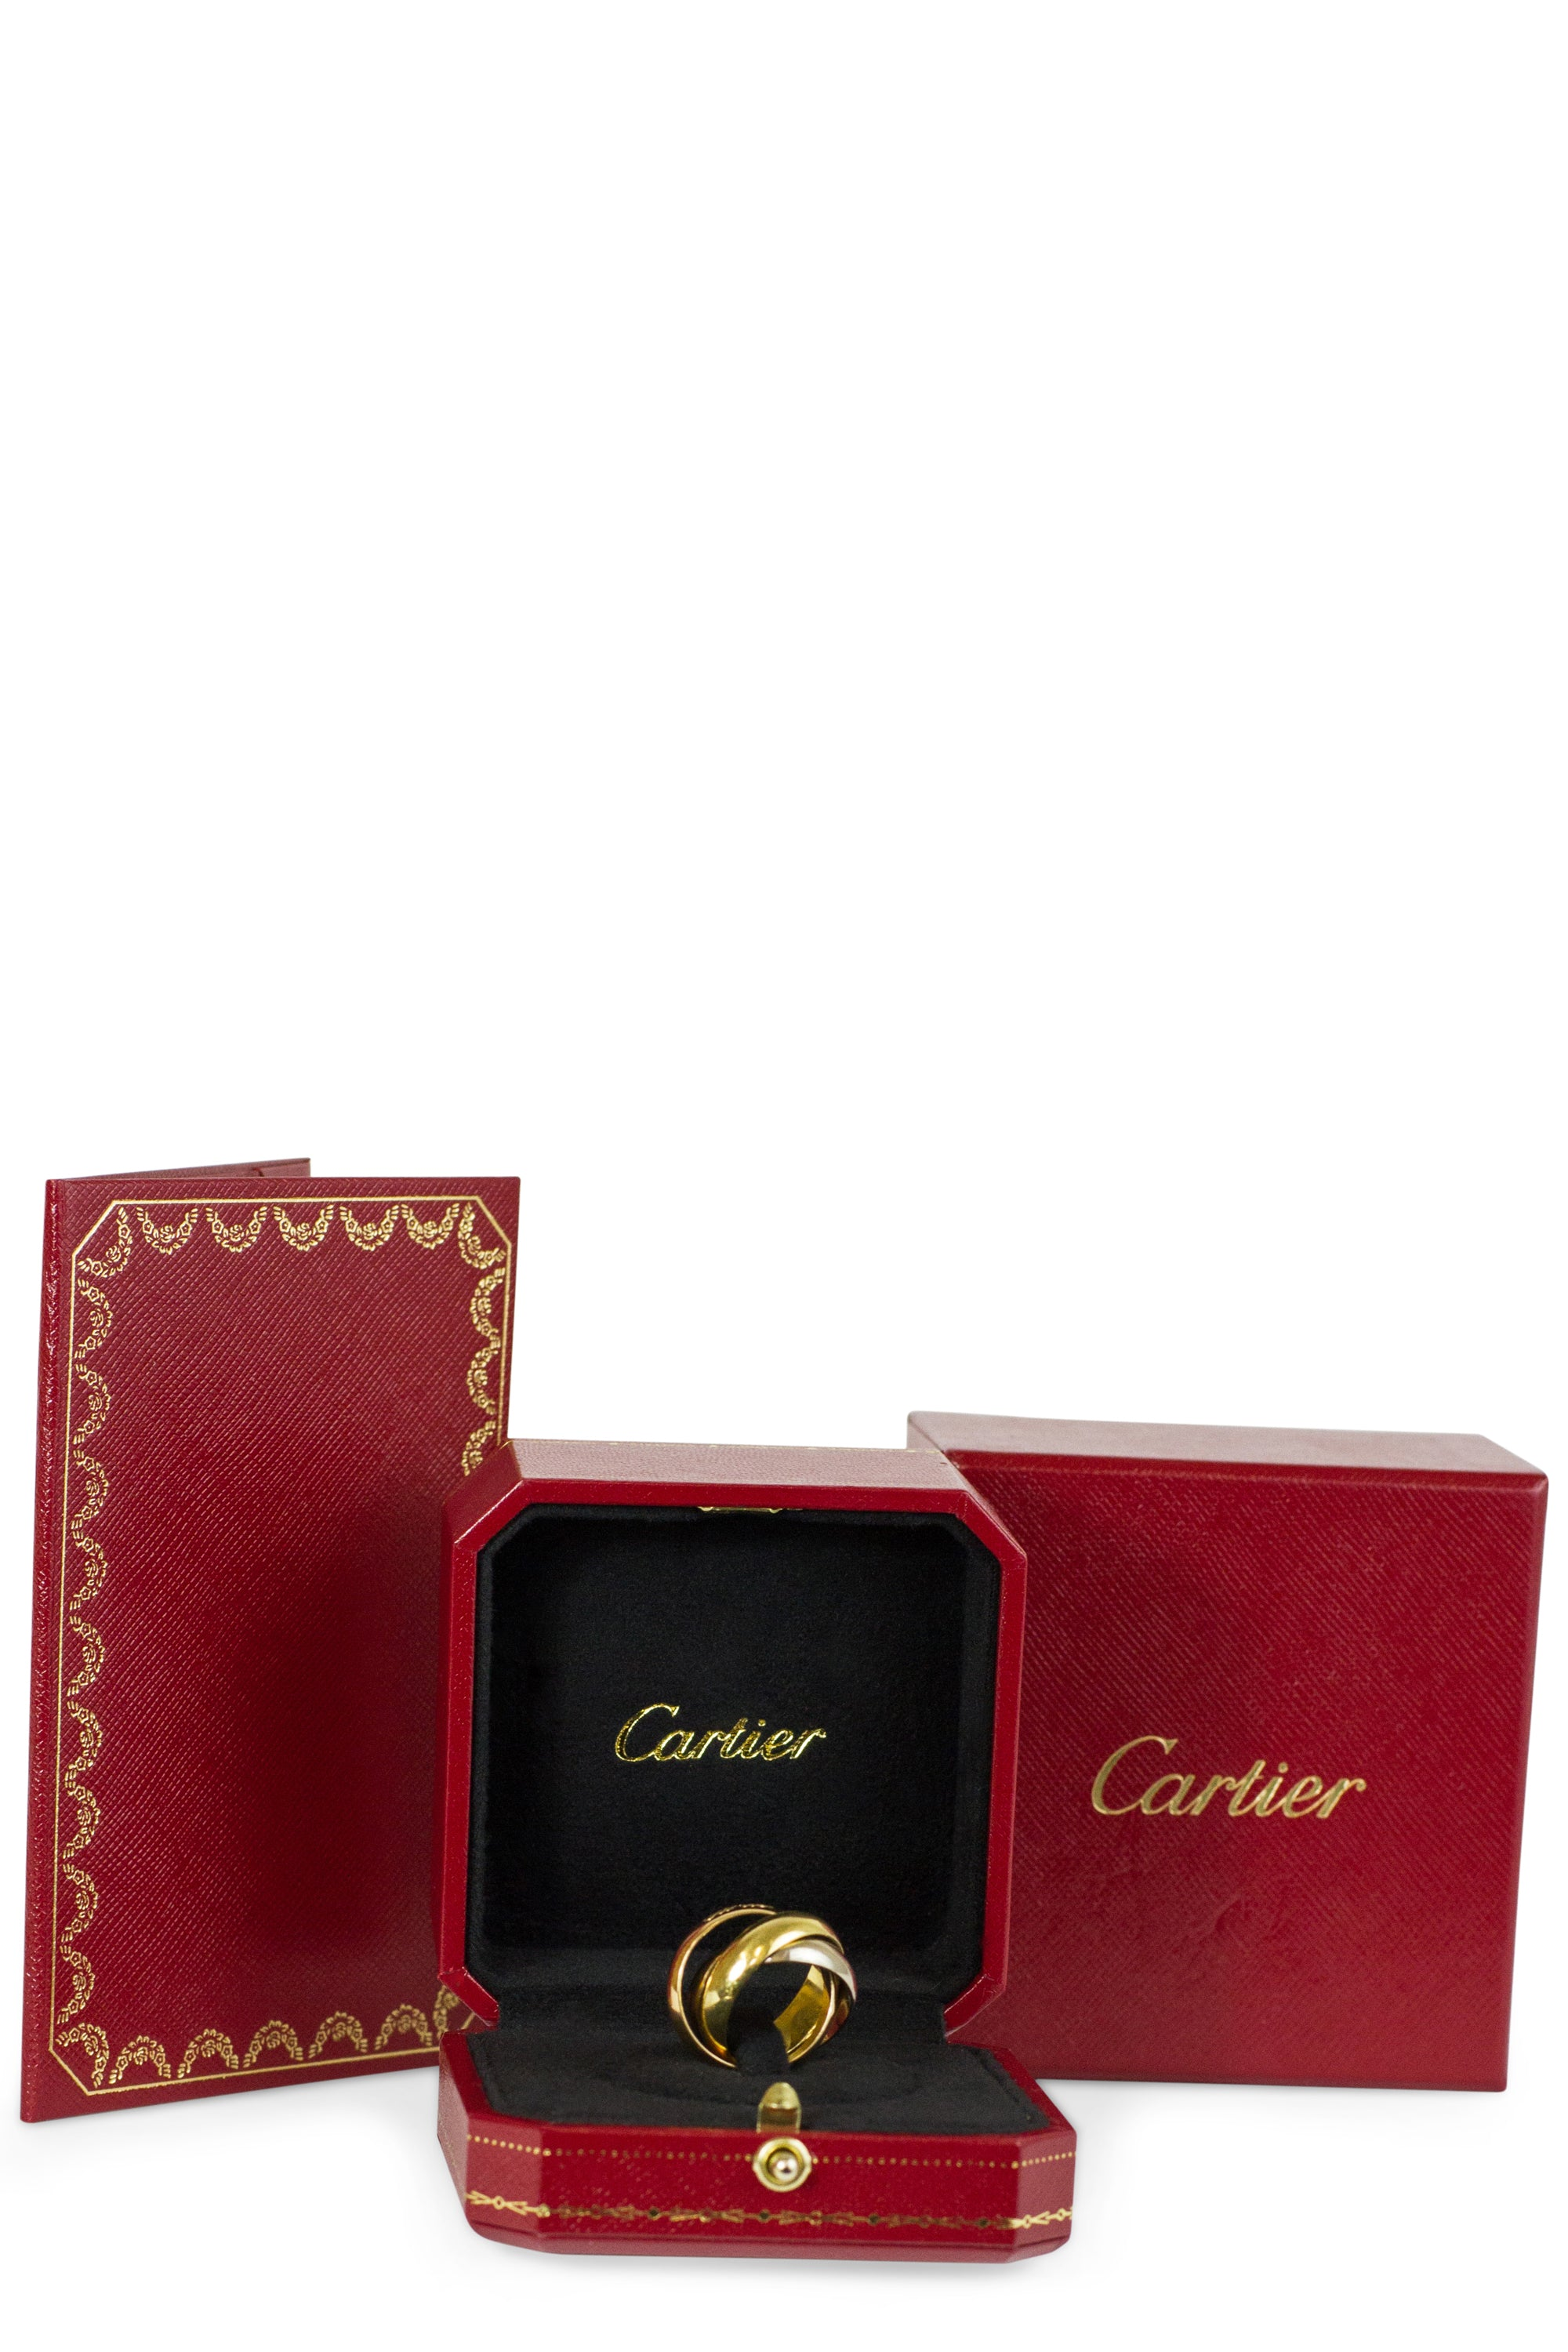 Cartier Trinity Ring LM Box Zertifikat